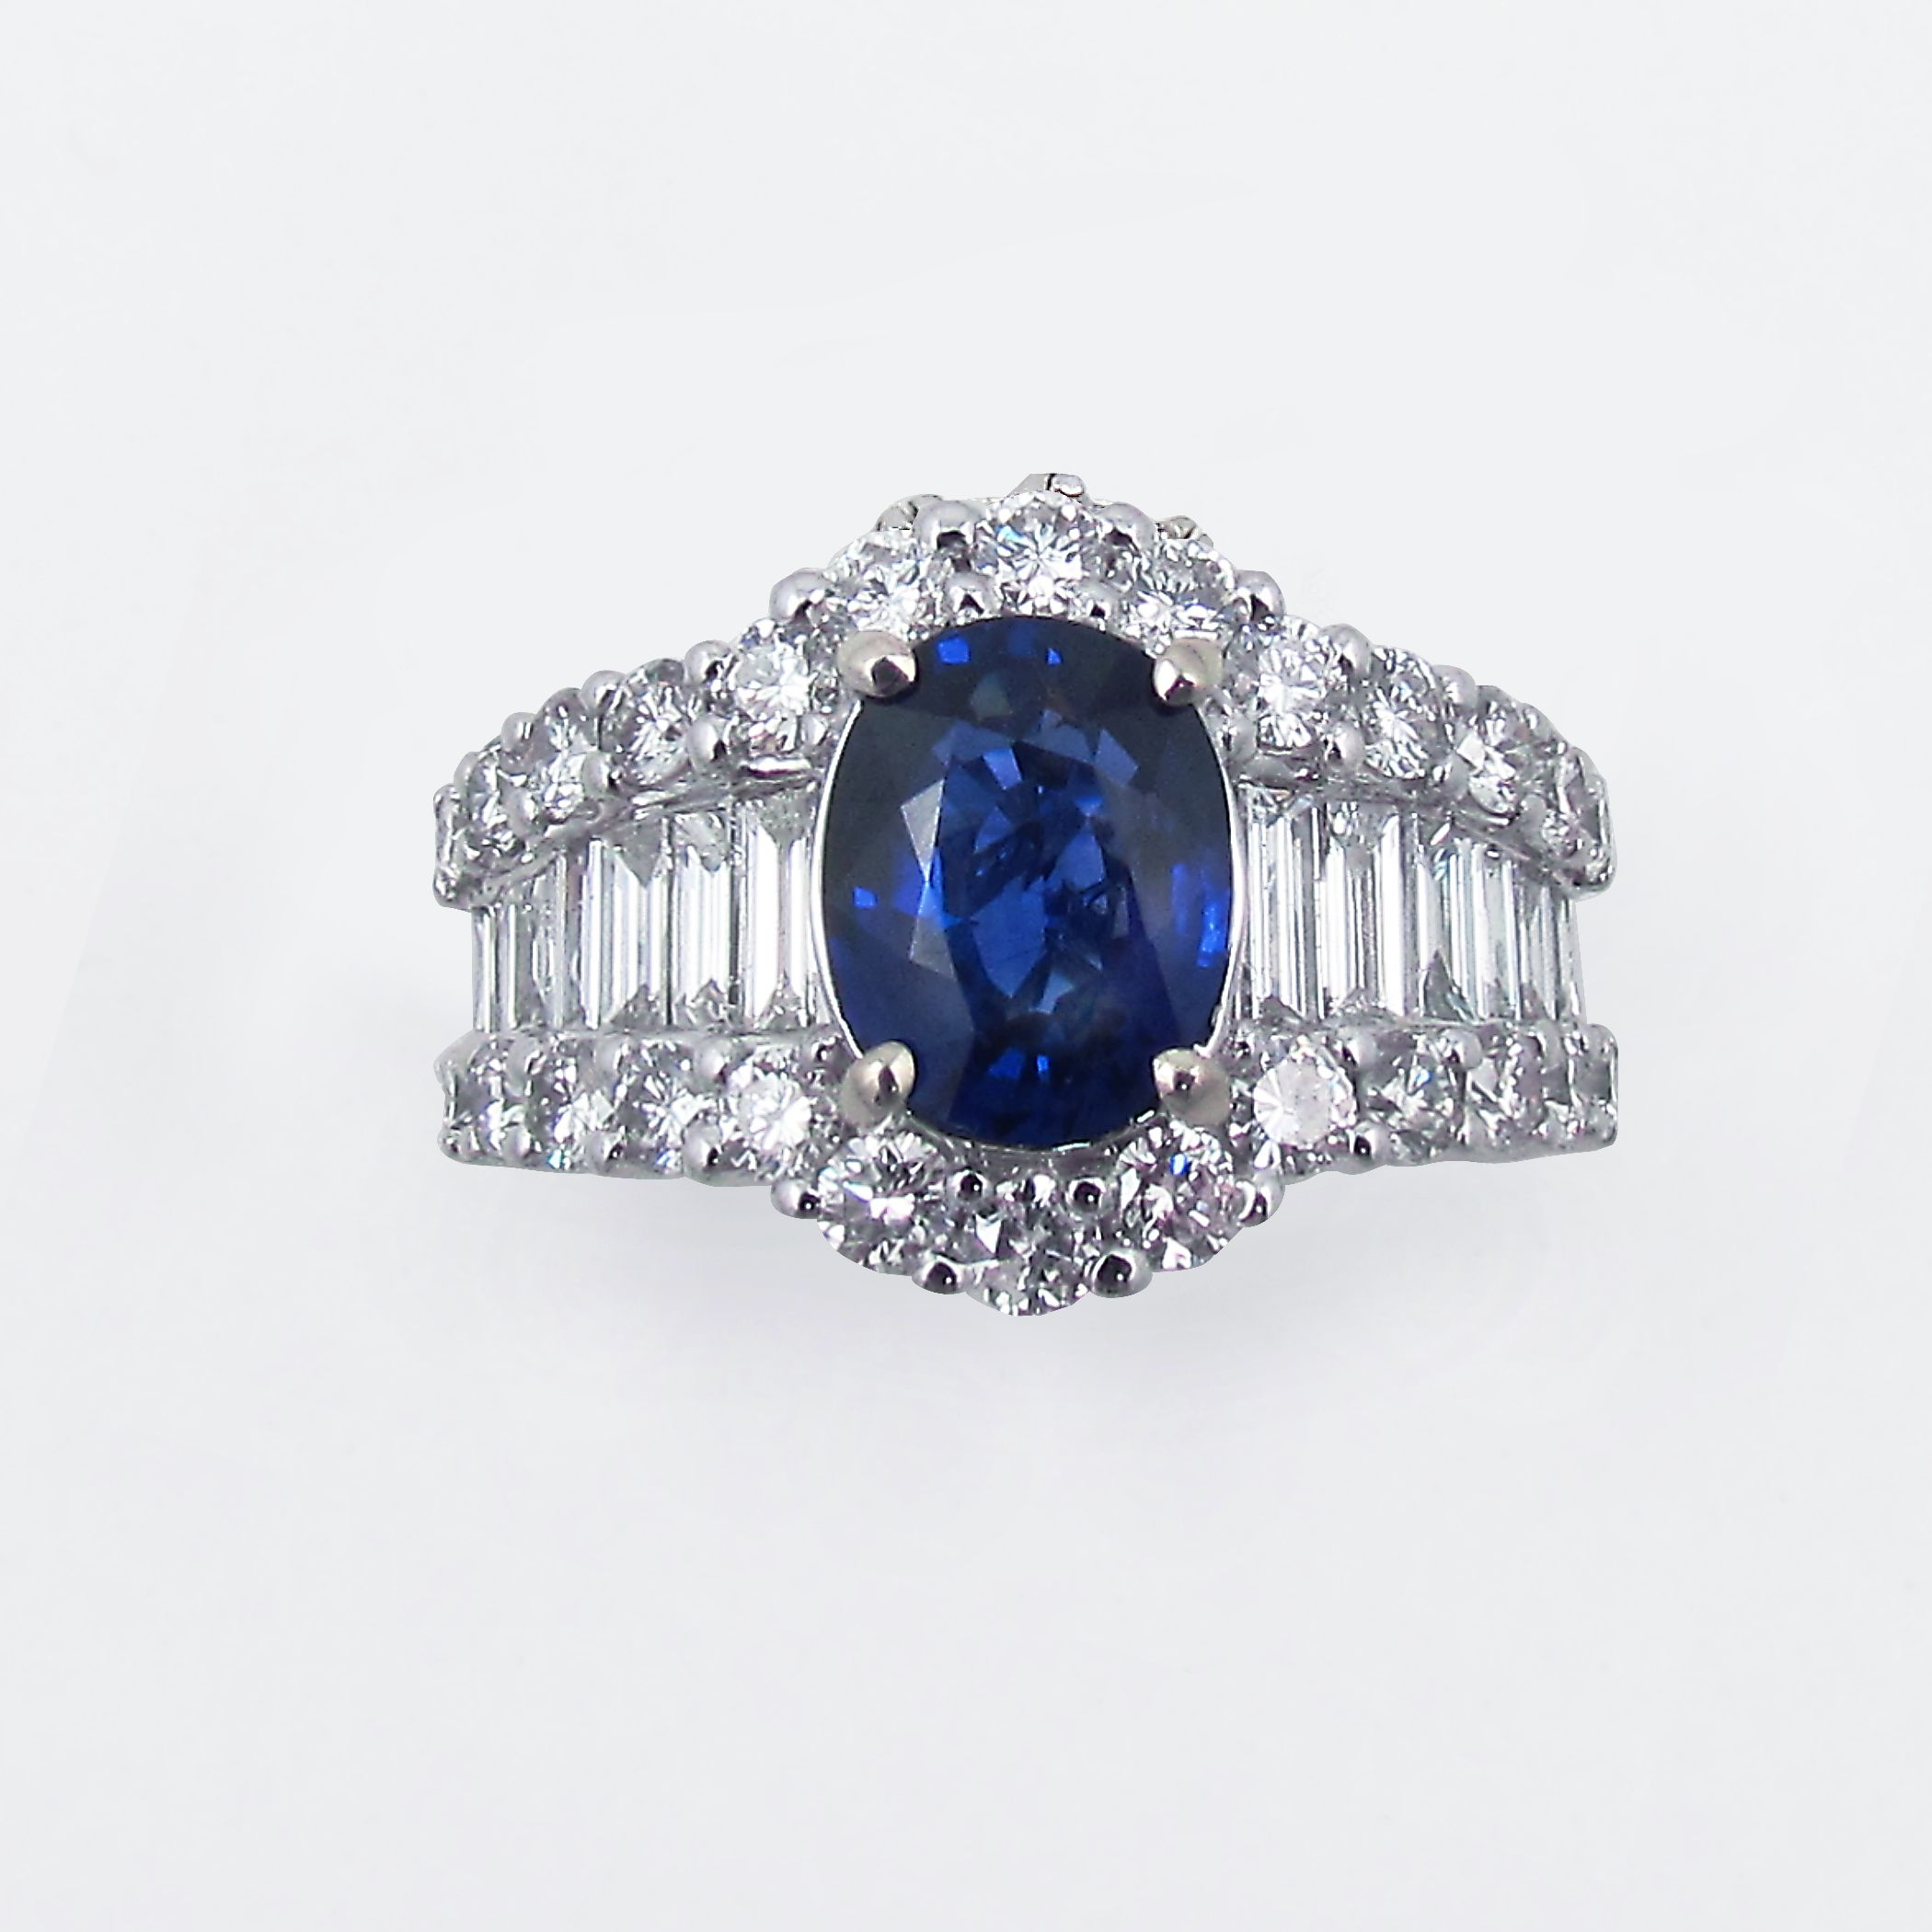 s european ring diamond antique engagement art cut old carat deco sapphire